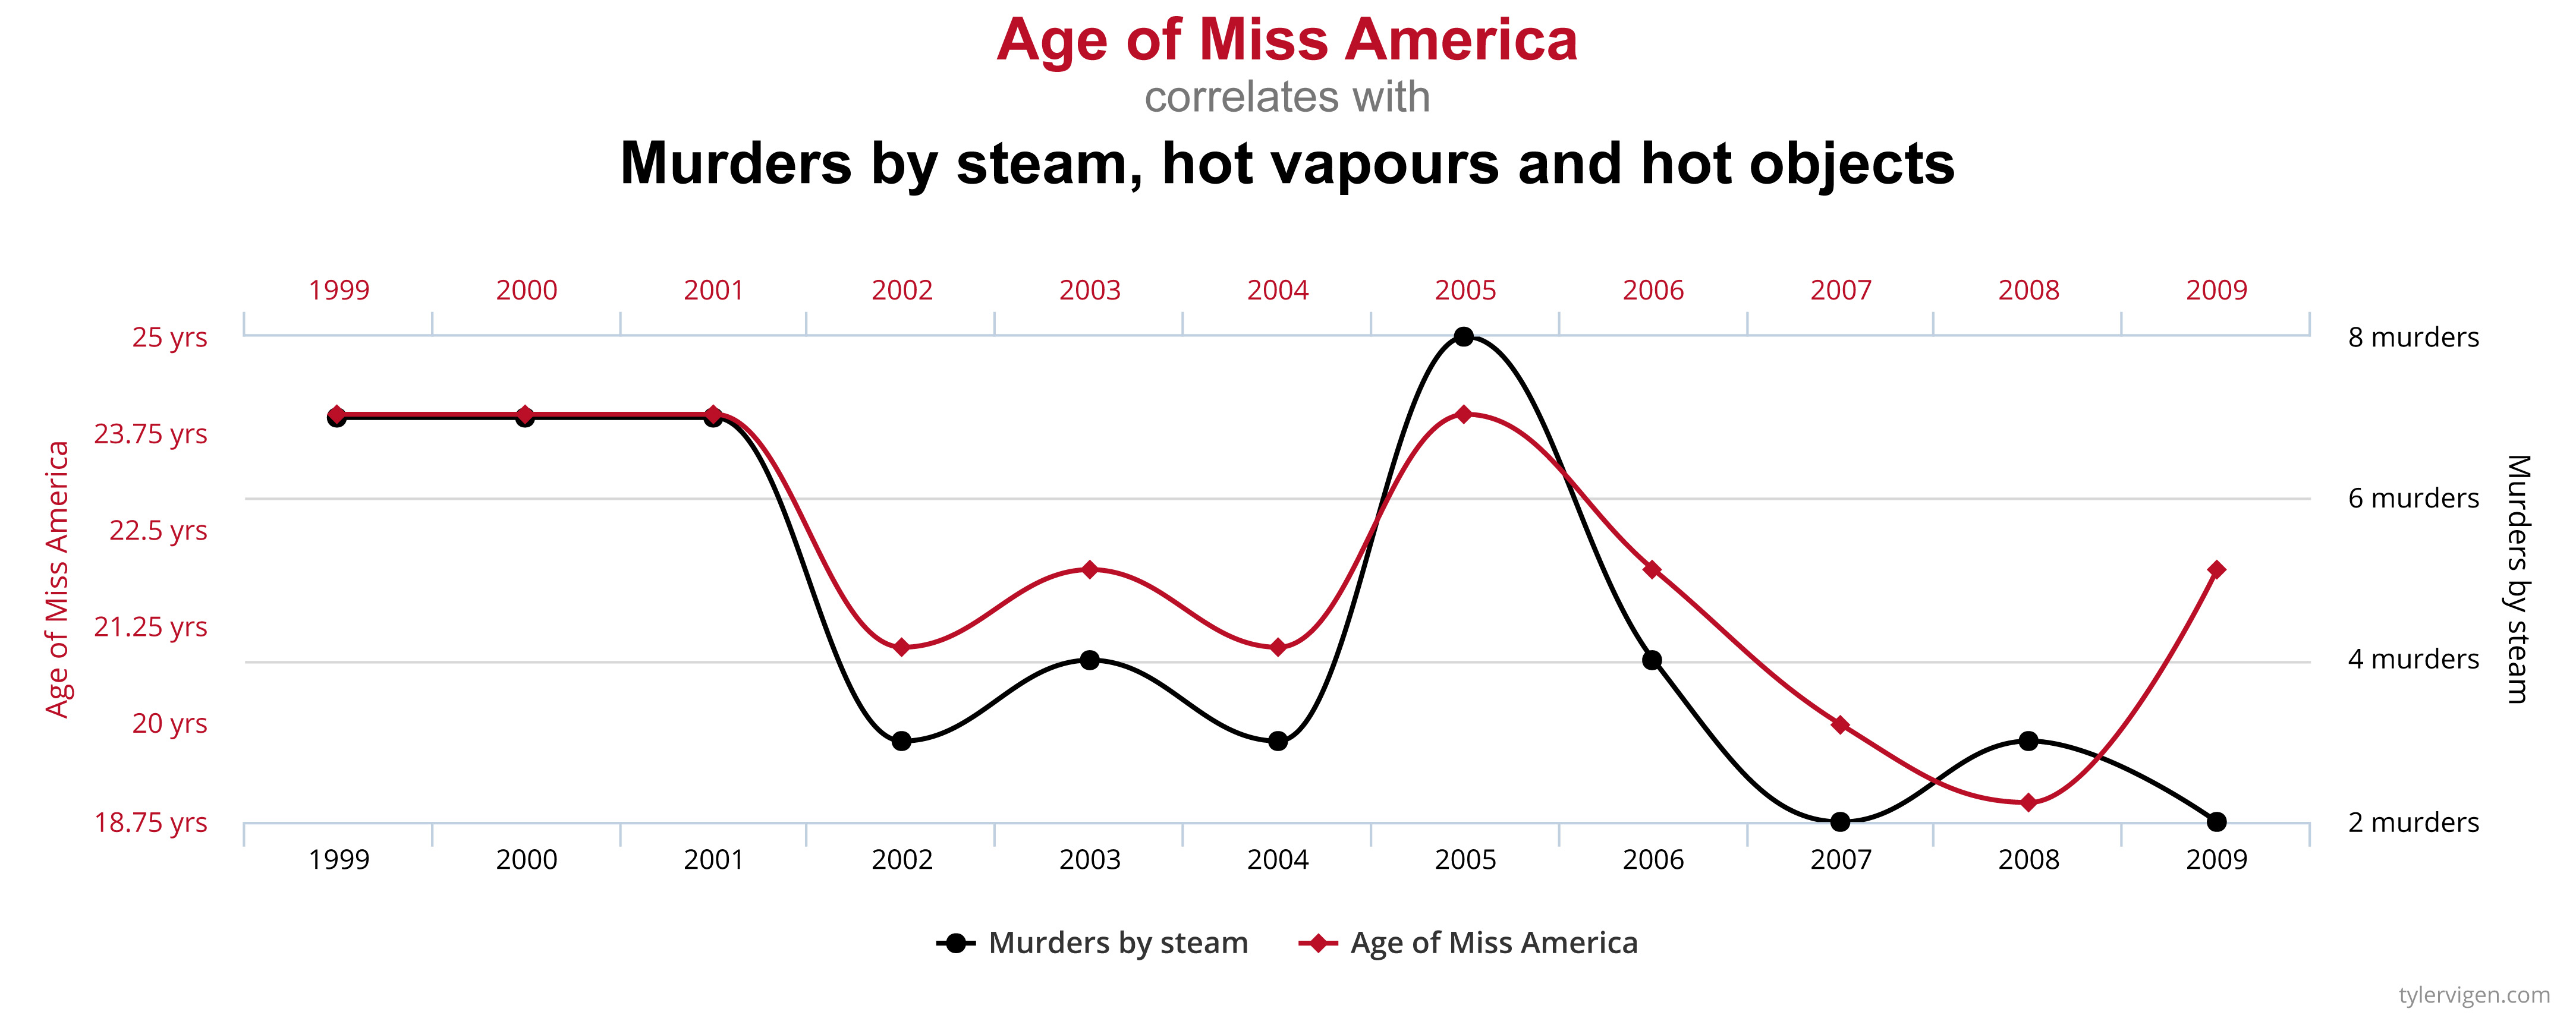 A chart showing a correlation between the age of Miss America, and the number of Murders by steam, hot vapours, and hot objects.